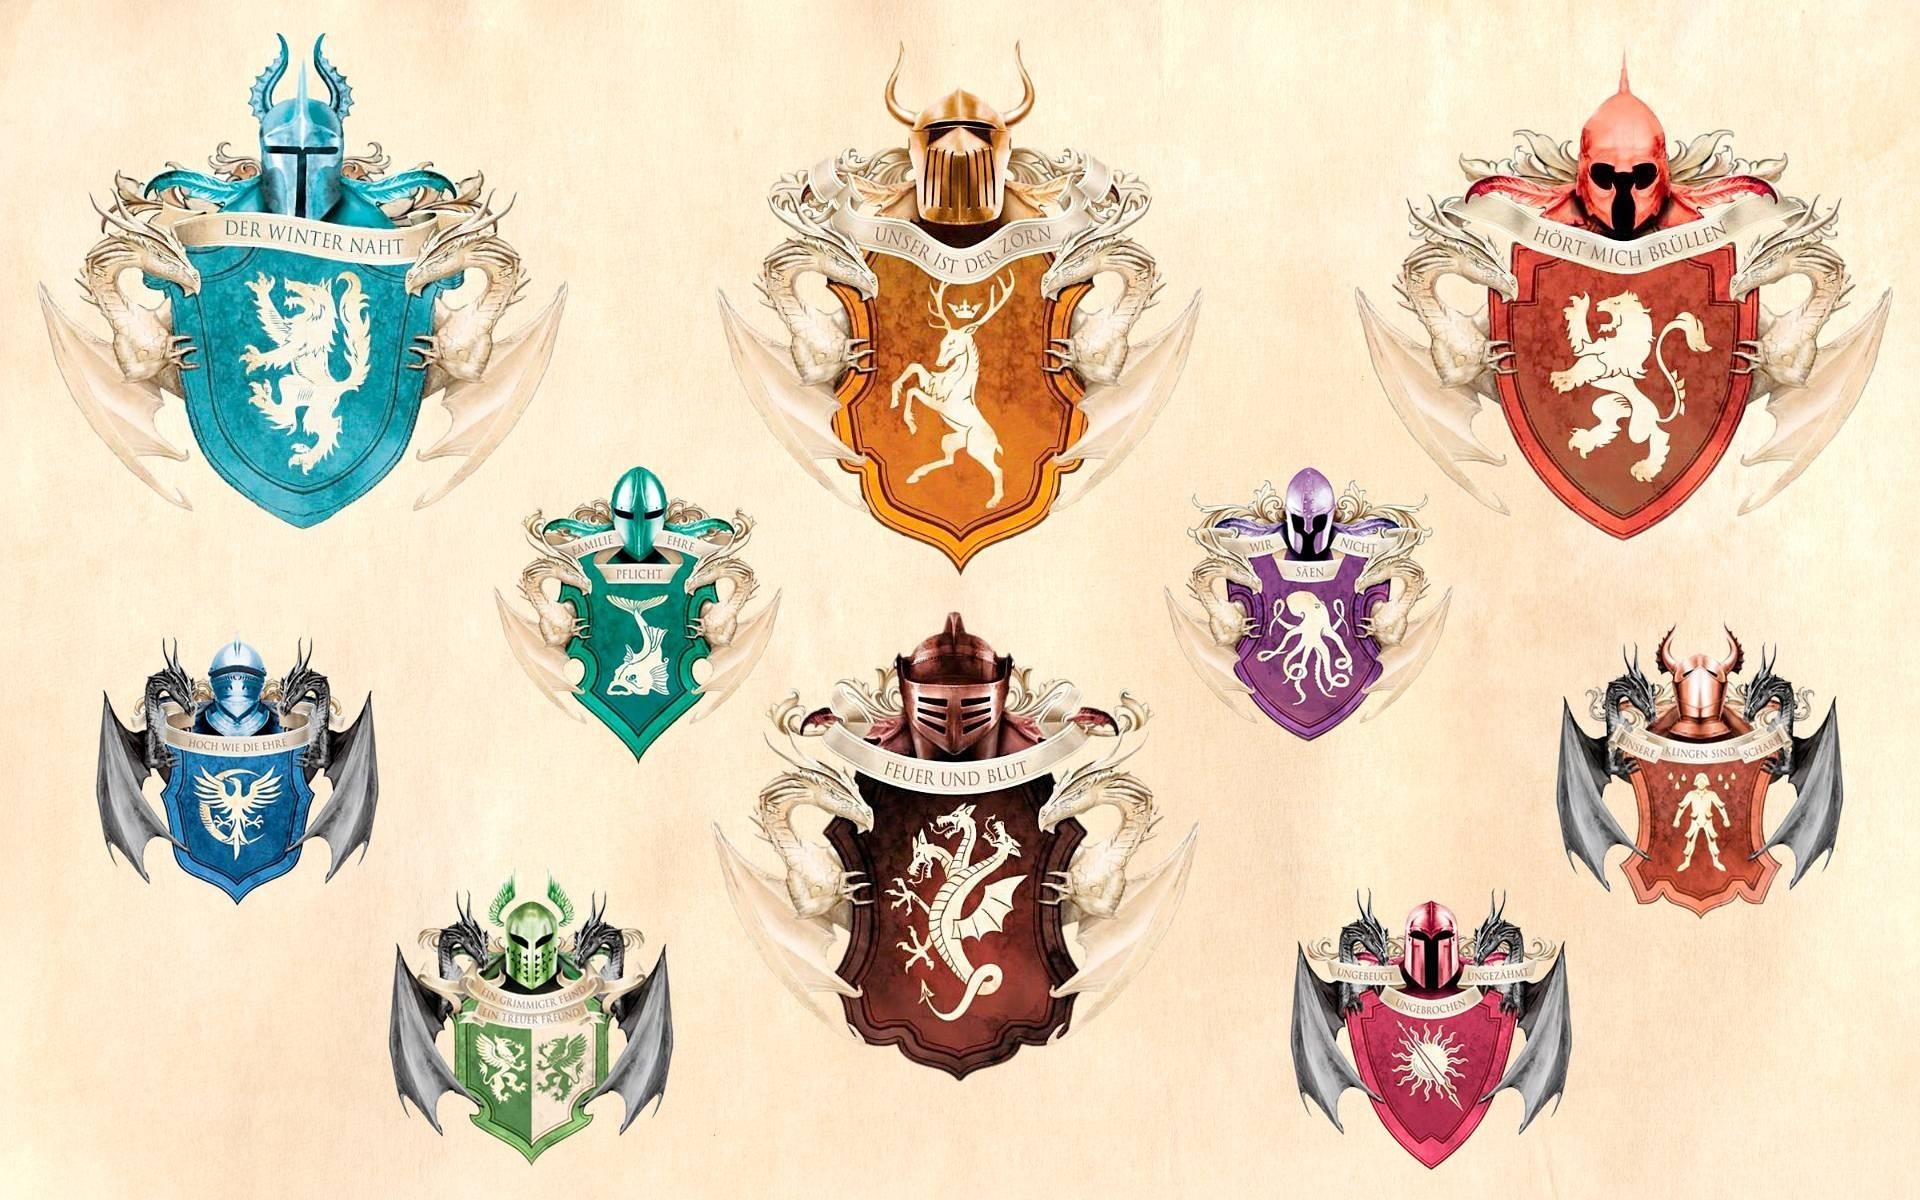 A Song Of Ice And Fire Game Thrones House Stark Targaryen Tully Westeros …